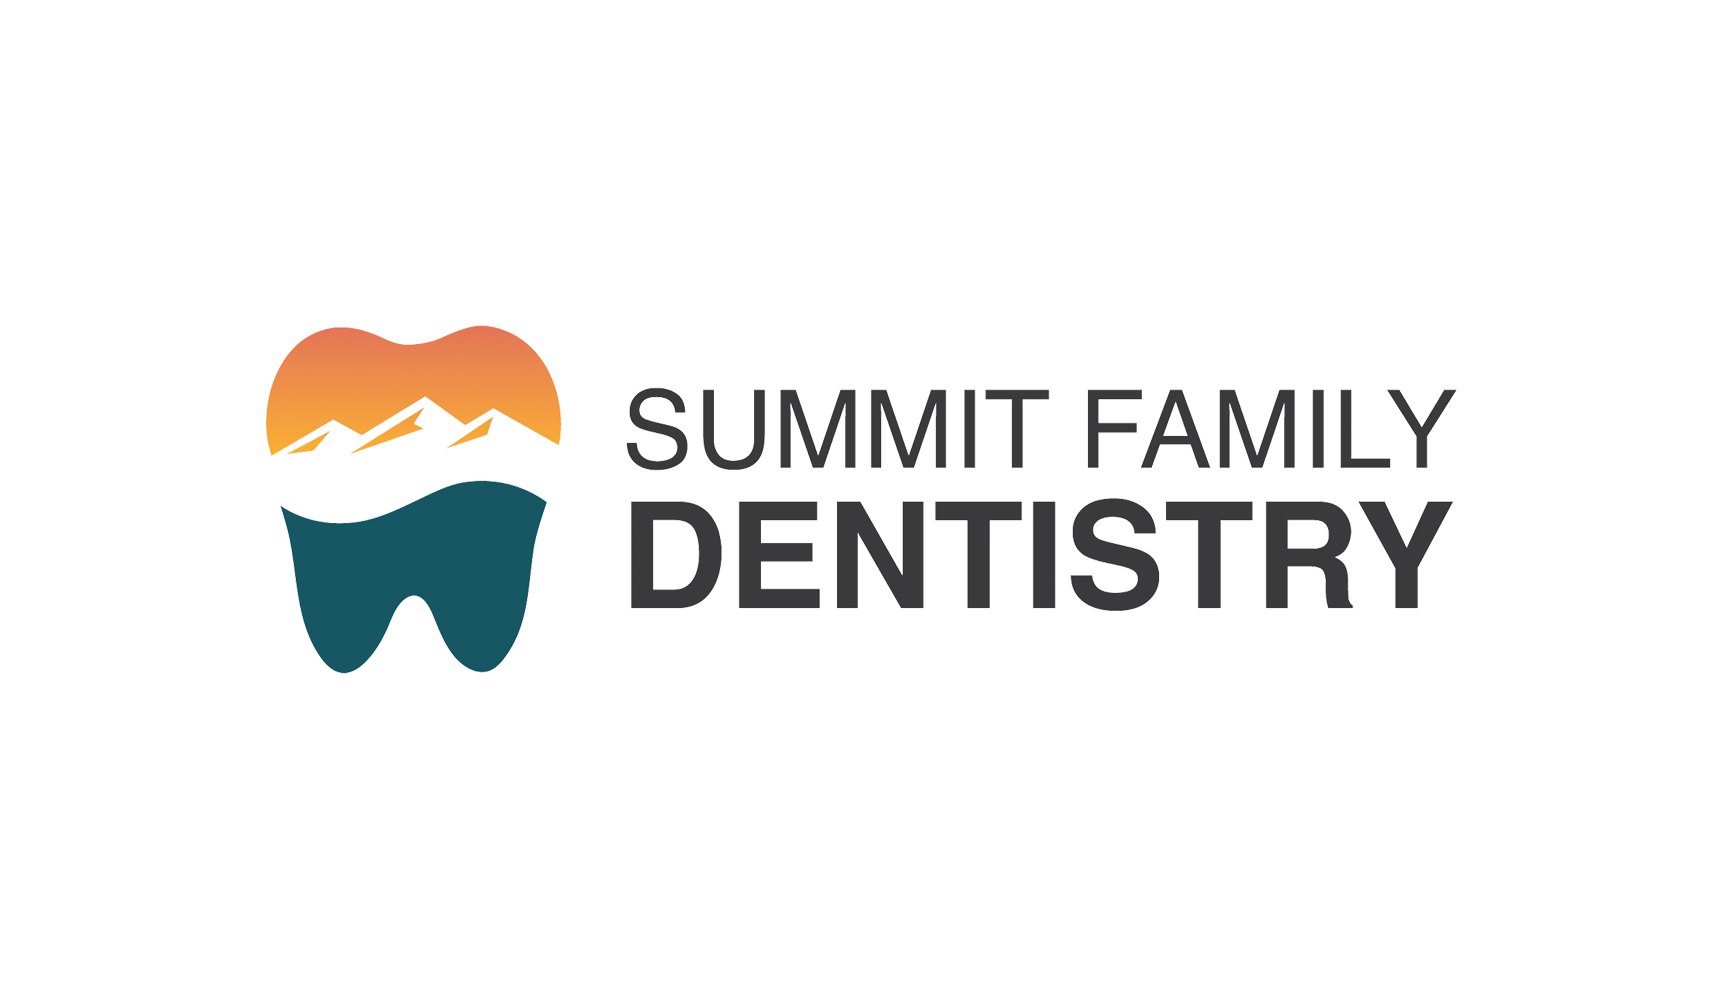 Summit Family Dentistry